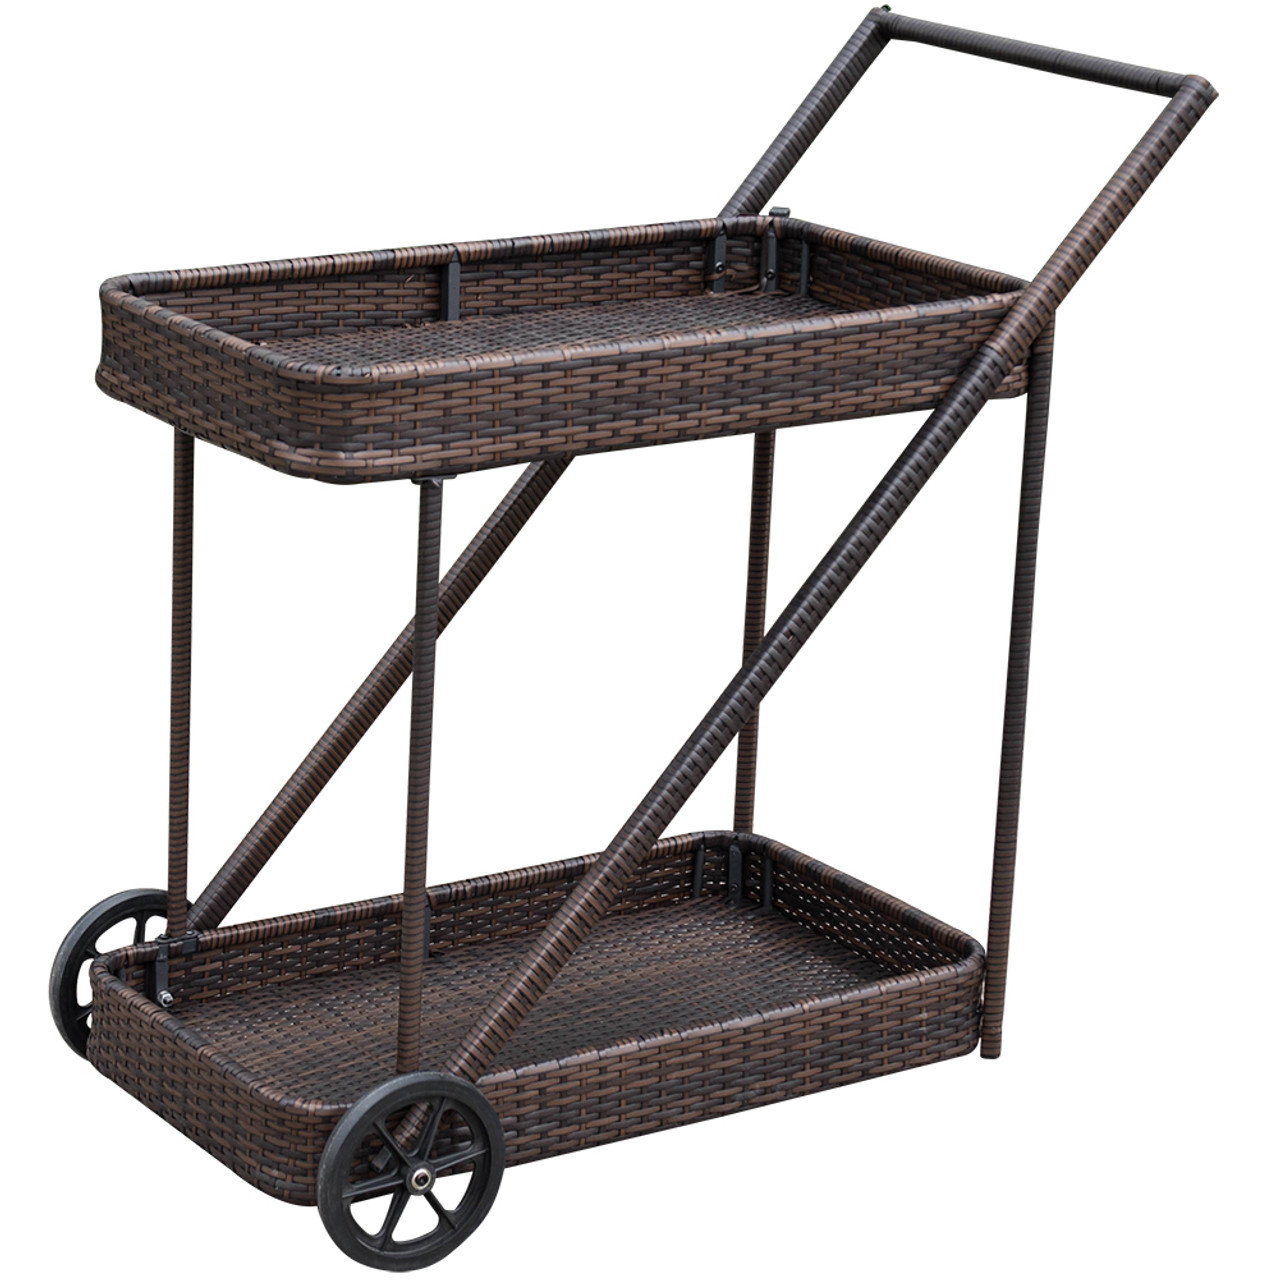 Patio Deluxe Resin Wicker Serving Bar Cart With 2 Wheels For  Party,Picnic,Outdoors